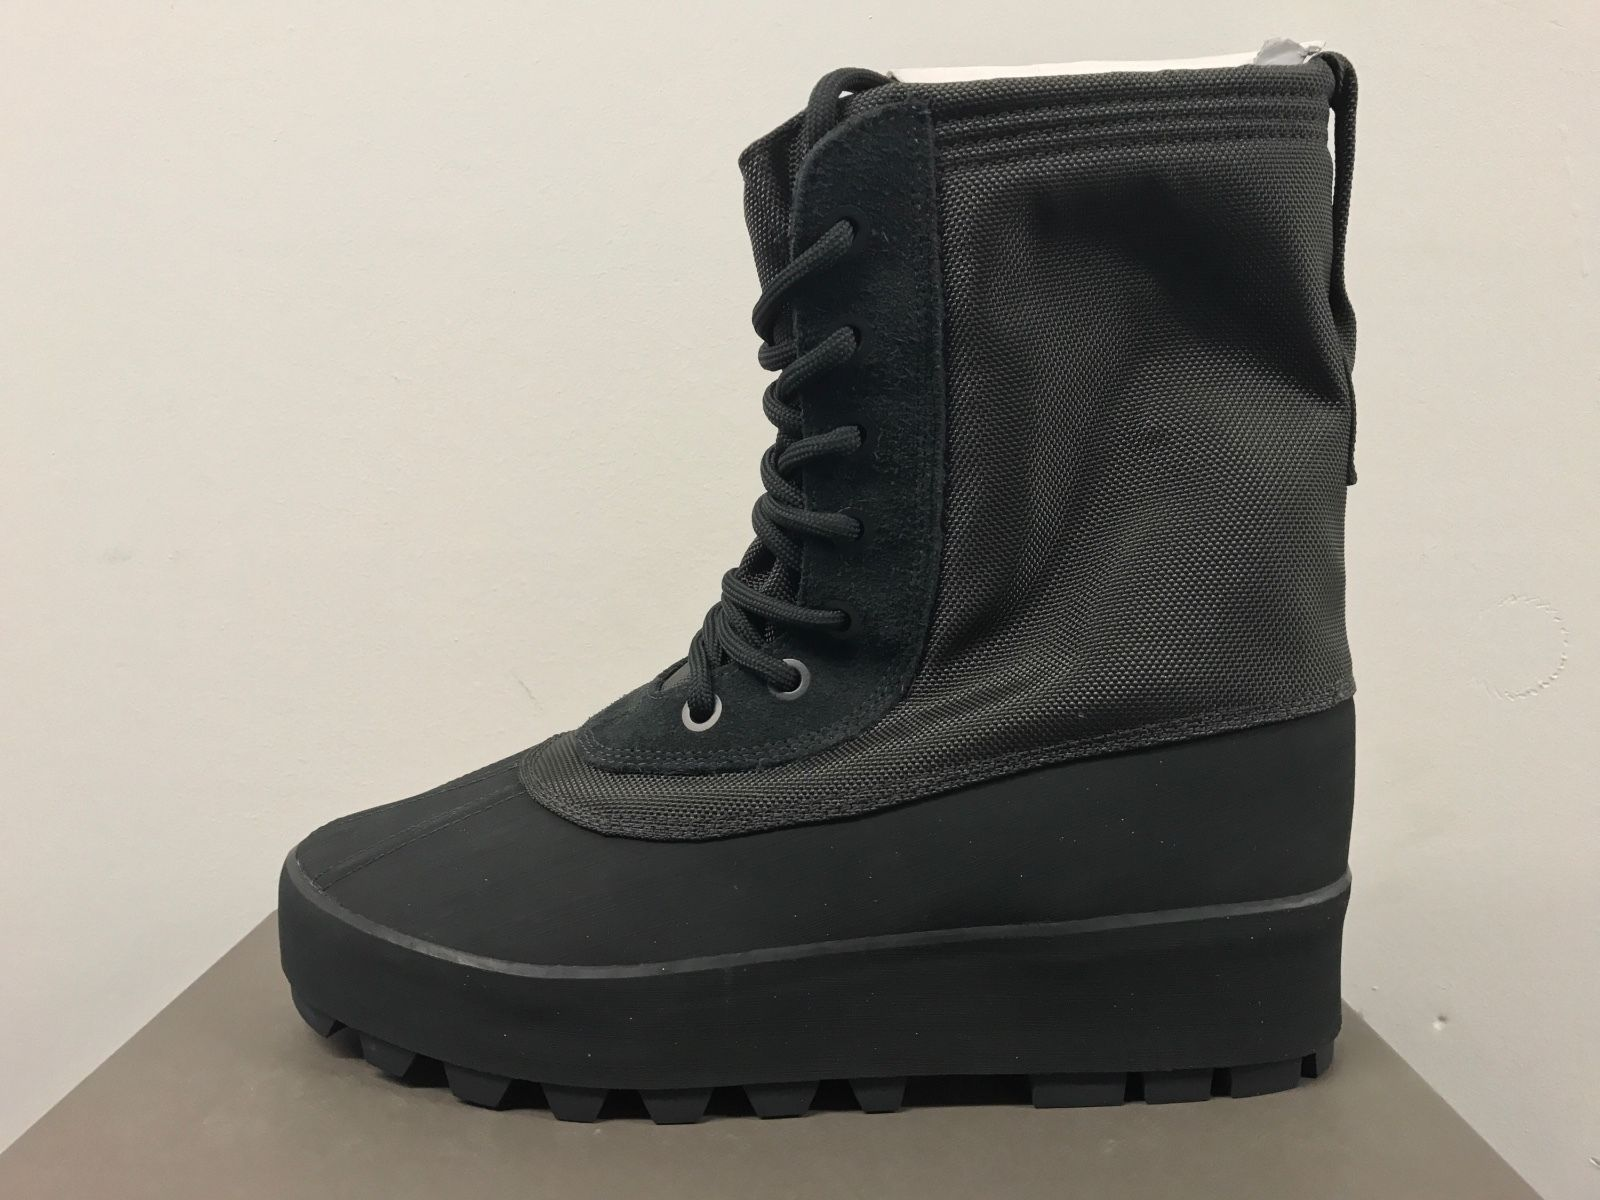 Adidas X Kanye West Yeezy 950 Boost Boot Pirate Black Sz 11 Black V2 350 750 Red Boots All Black Sneakers Black Sneaker